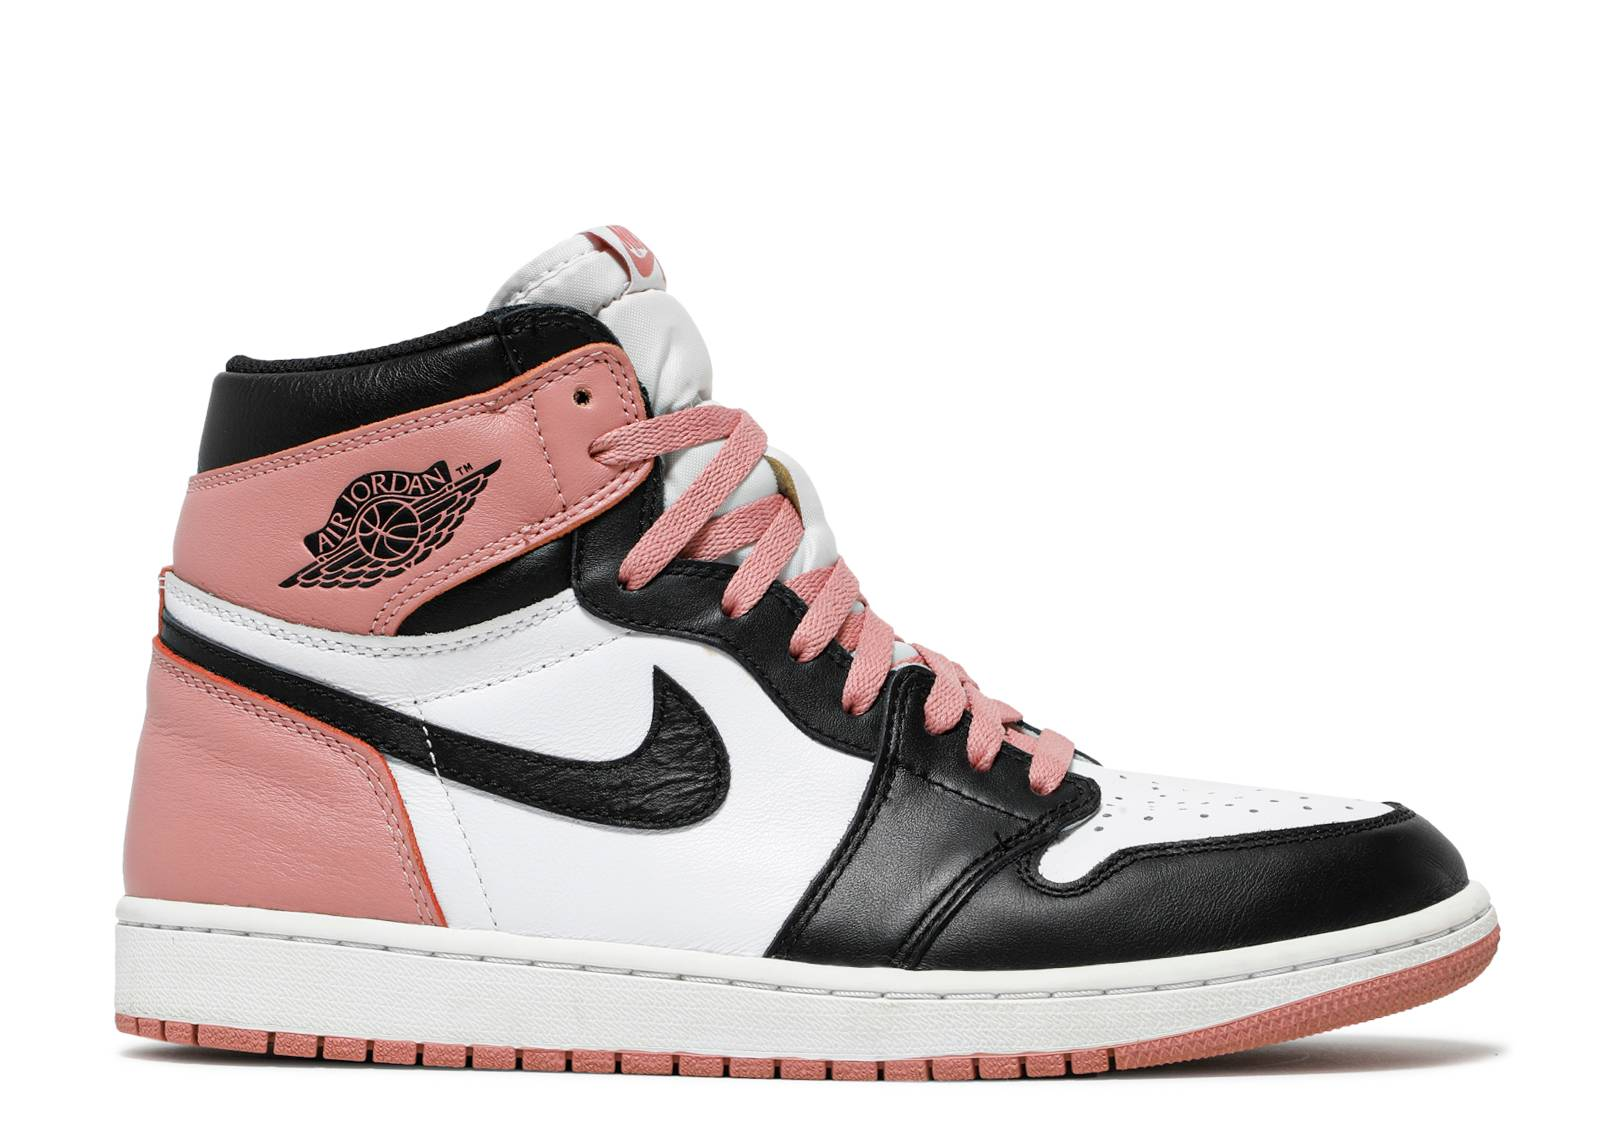 air jordan 1 retro high og nrg rust pink